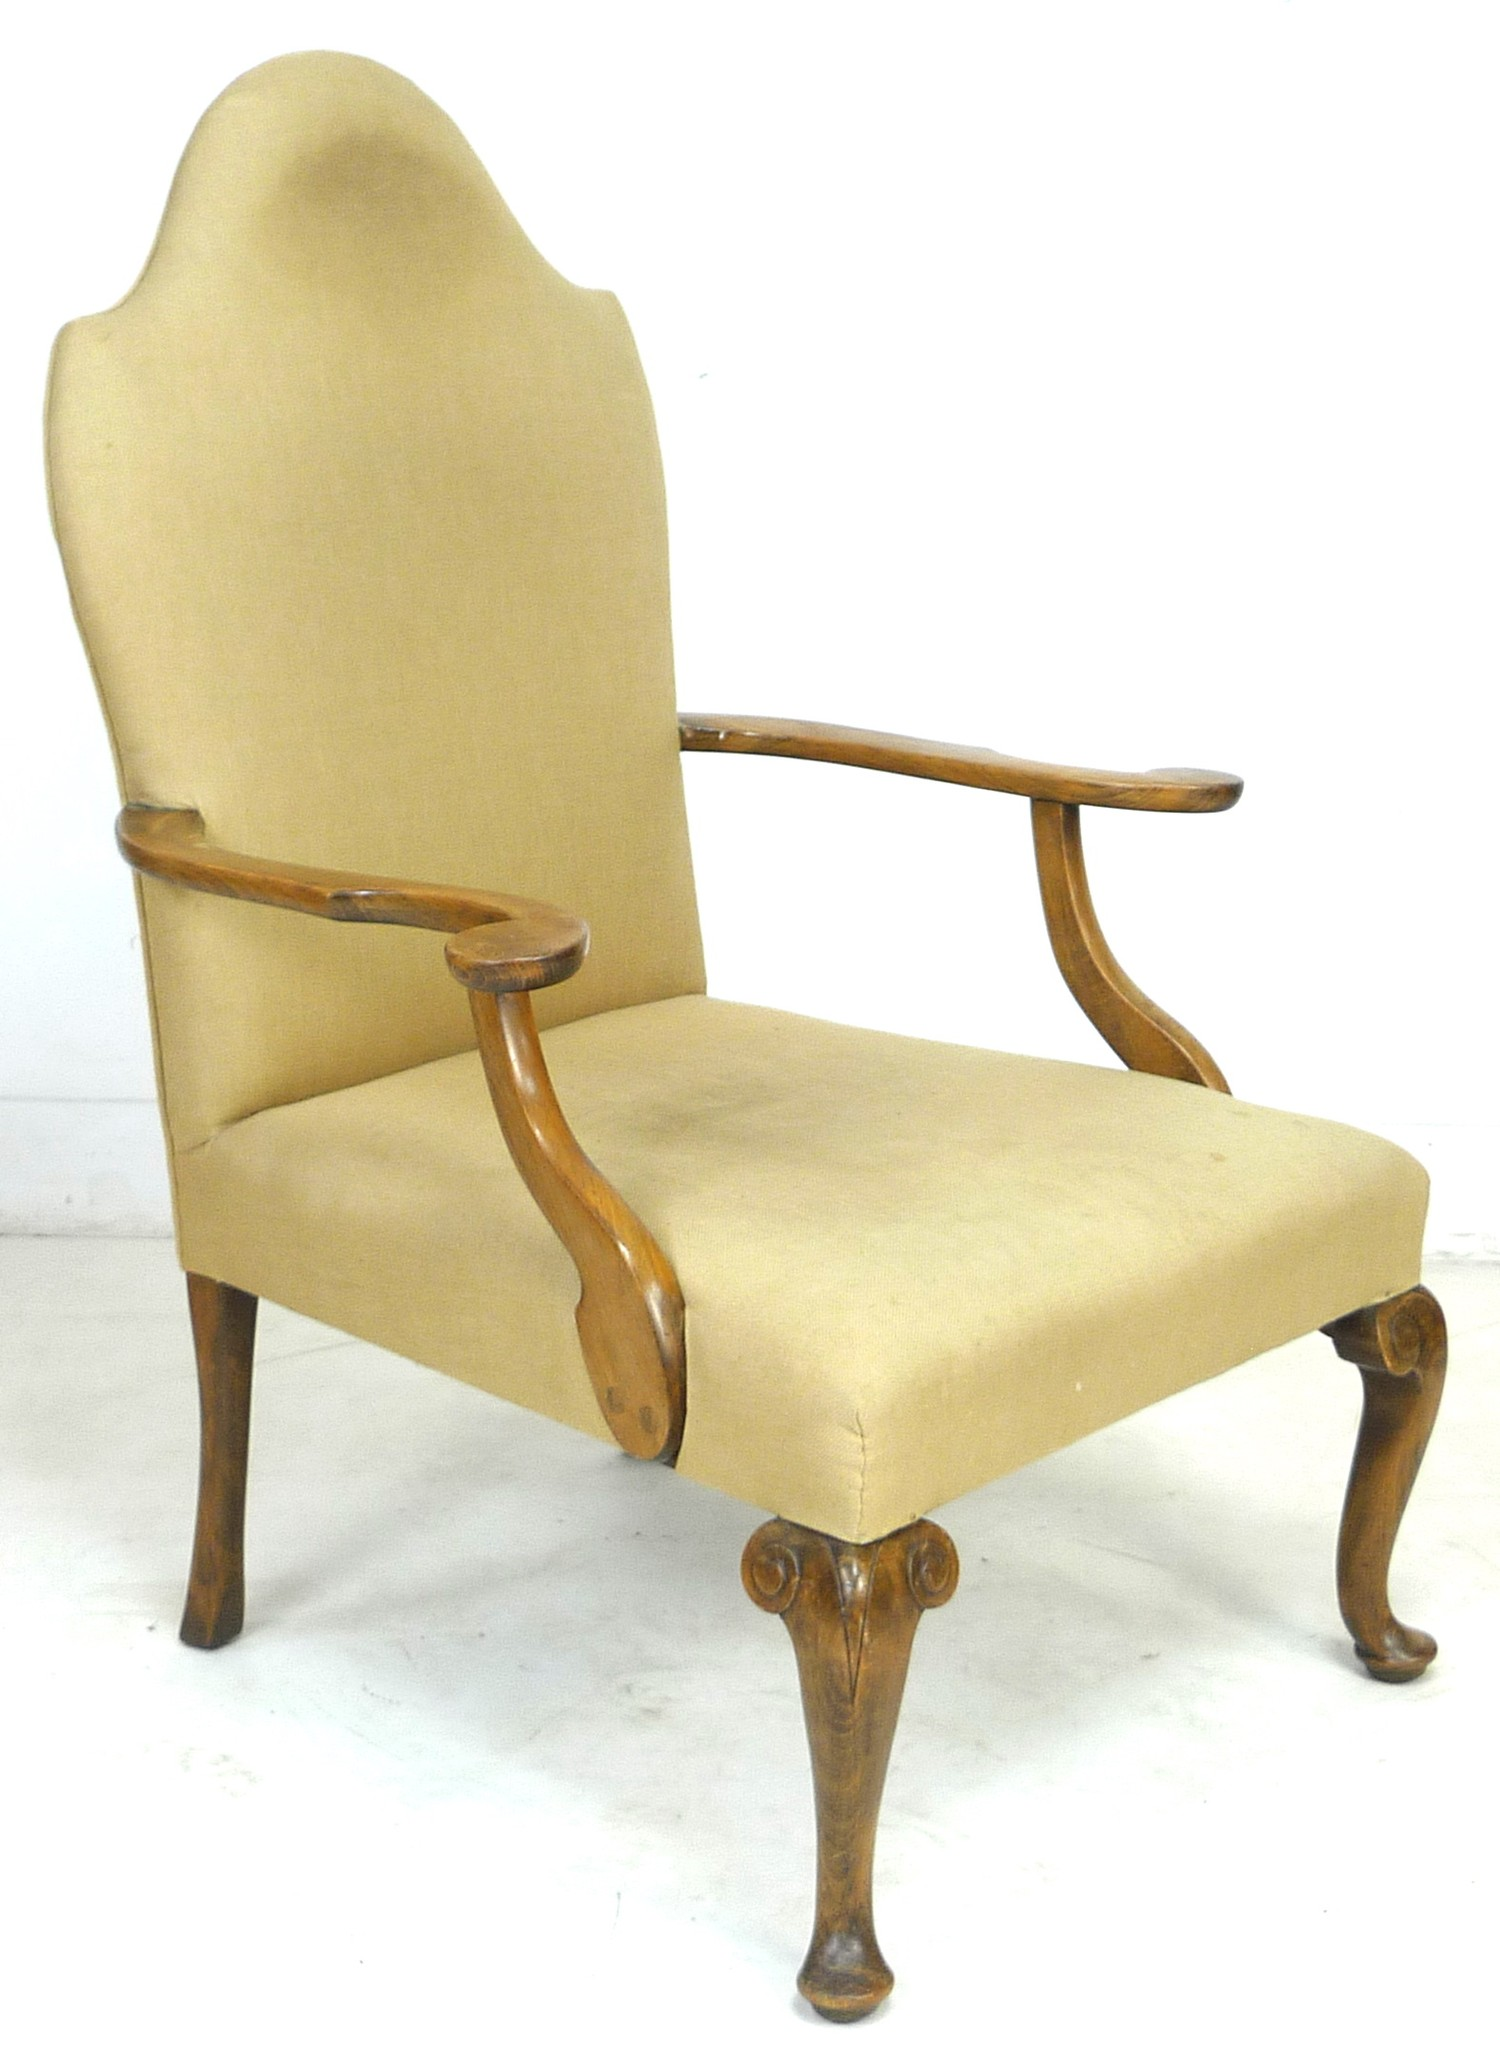 An Edwardian mahogany open armchair, in Queen Anne style, upholstered in cream foliate fabric, 72 by